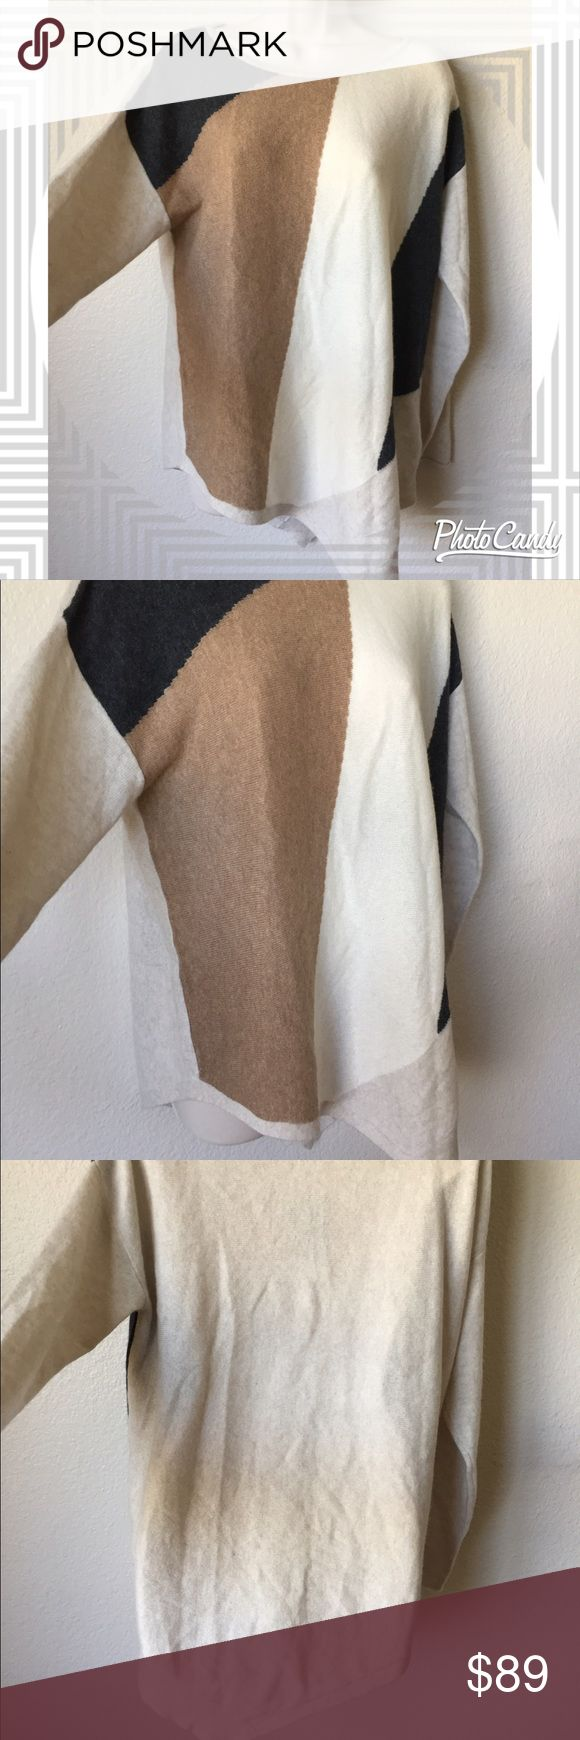 Charter Club 100% cashmere sweater--NWT! Gorgeous 100% cashmere sweater by Charter Club Luxury! Cream colored with grey and tan design and asymmetrical hem... brand new with tags! Size medium Charter Club Sweaters Crew & Scoop Necks